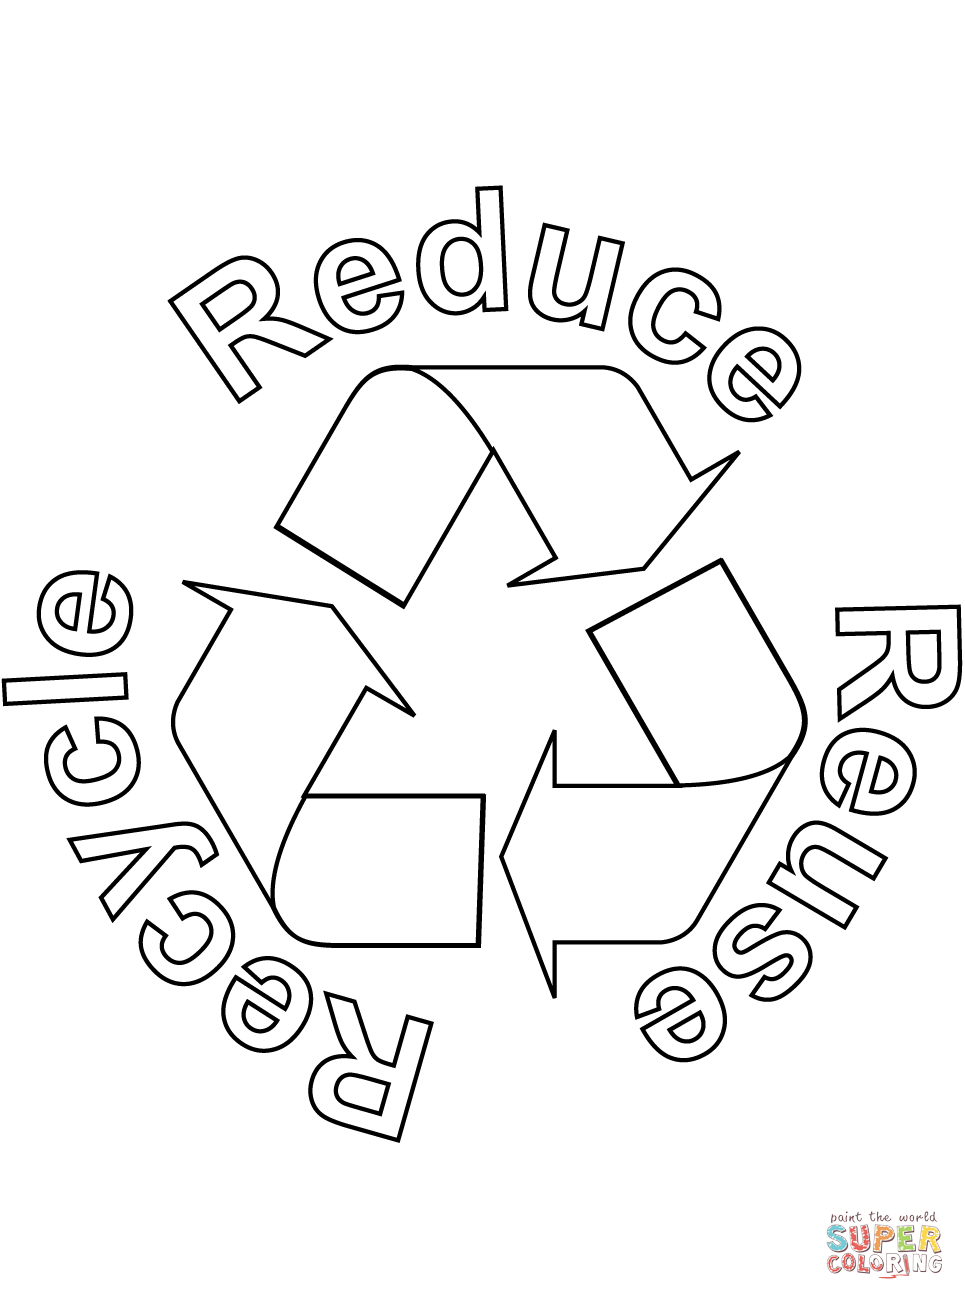 reduce reuse recycle symbol printable free recycle bin logo download free clip art free clip symbol reduce reuse printable recycle